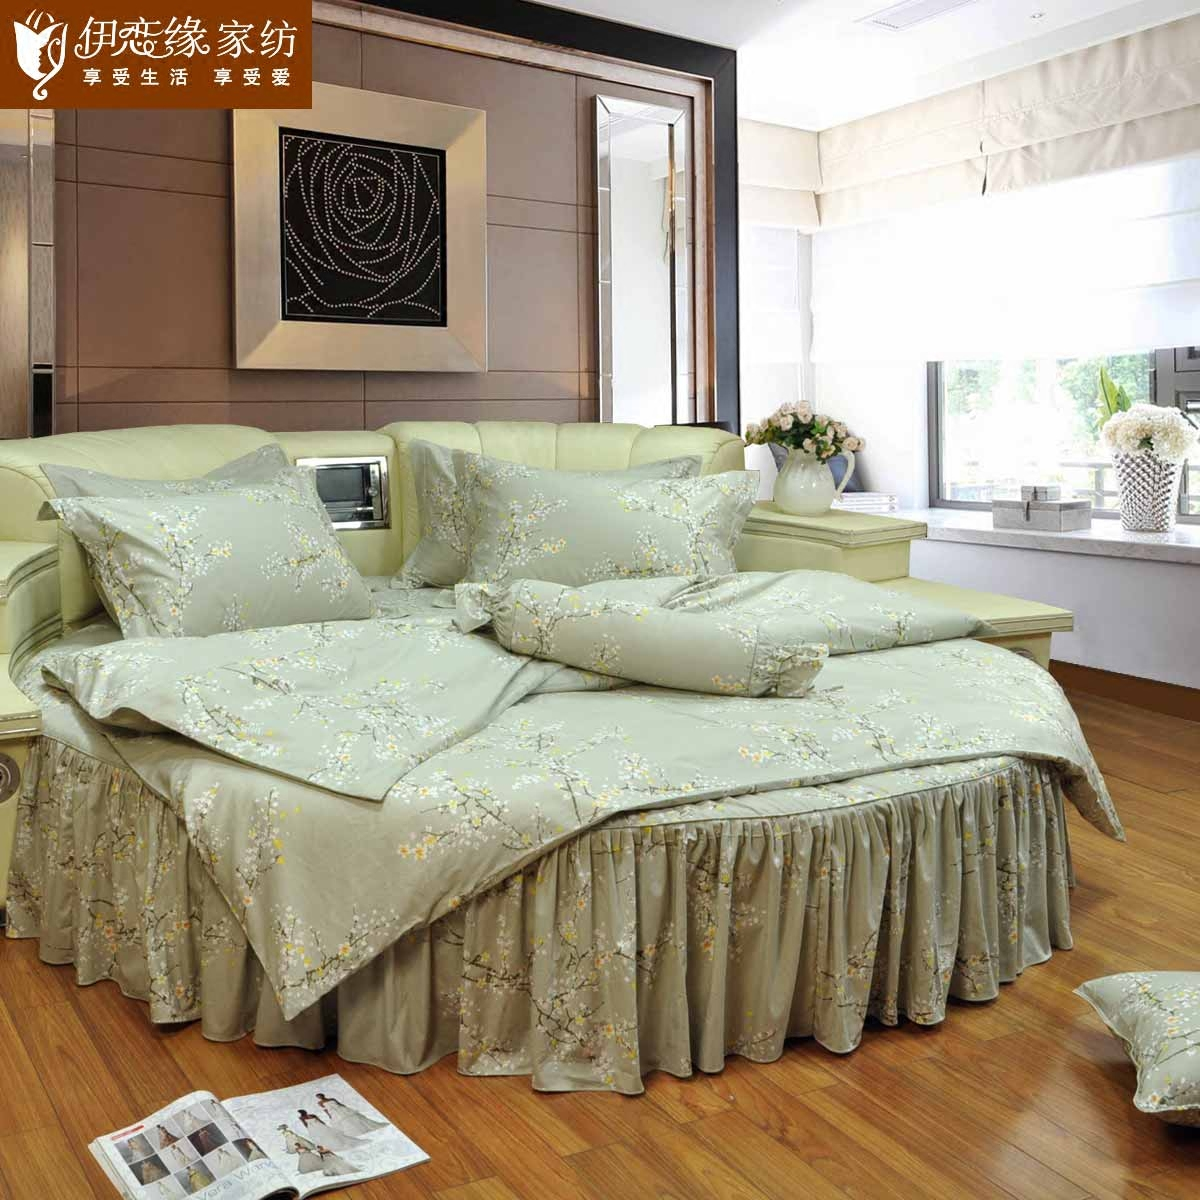 Love iraqi edge round bed family of four korean garden fresh cotton round bed skirt bedspread bedding custom xiangmei feelings